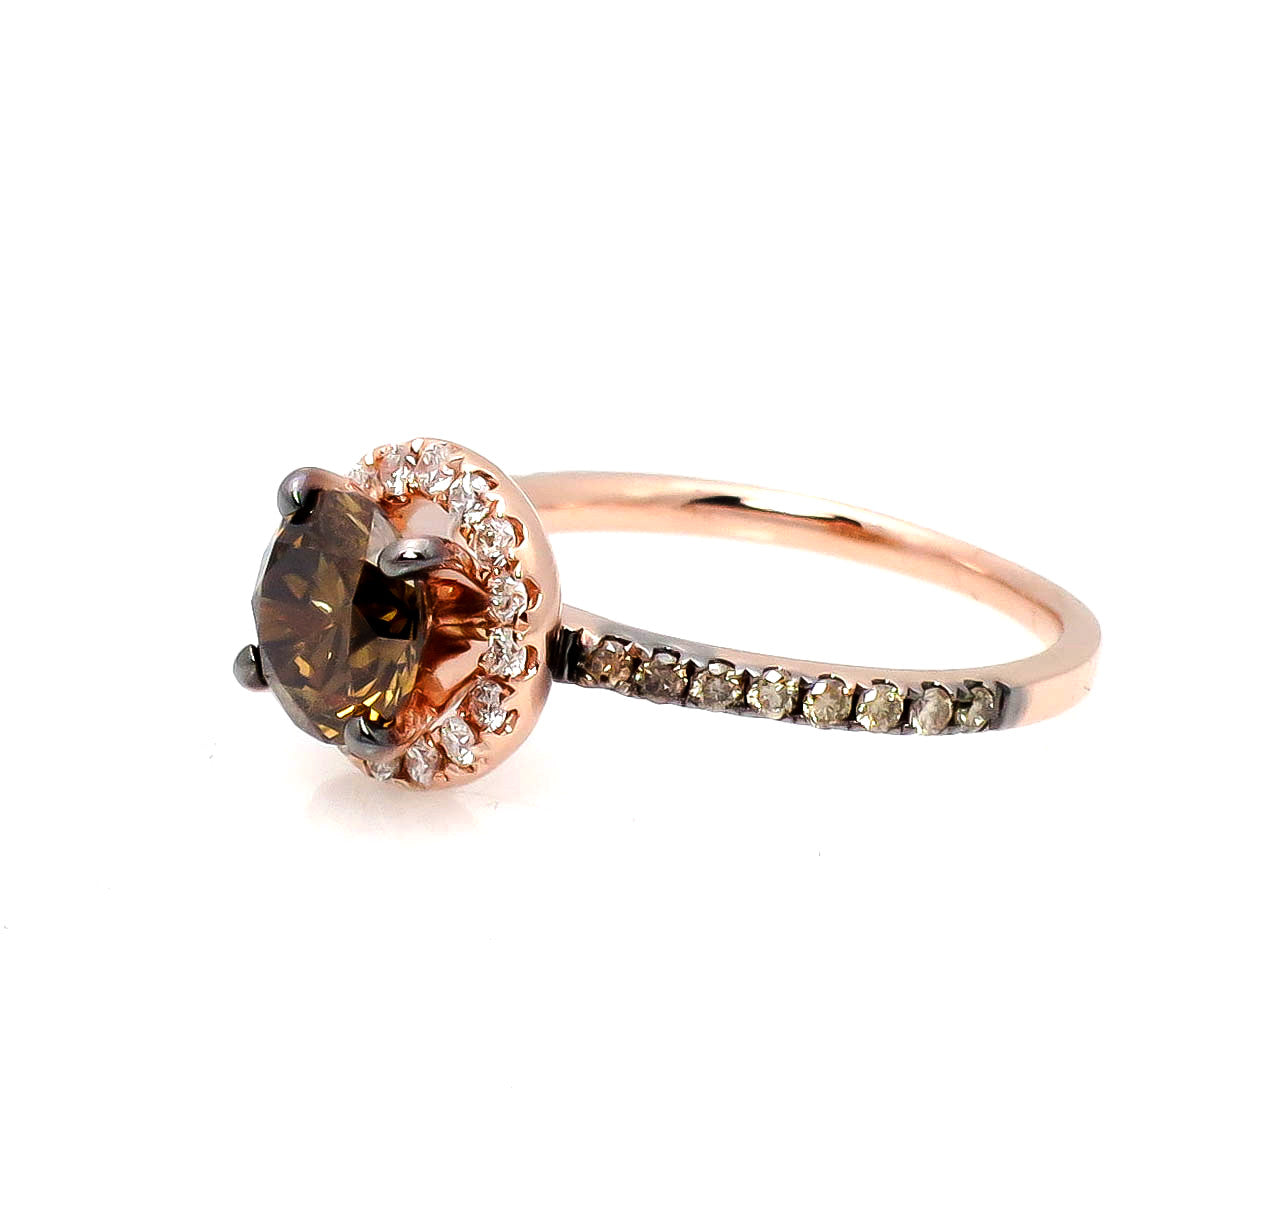 1 Carat Fancy Brown Diamond Halo, White Diamond Accent Stones, Rose Gold, Engagement Ring, Anniversary Ring - BD94639A